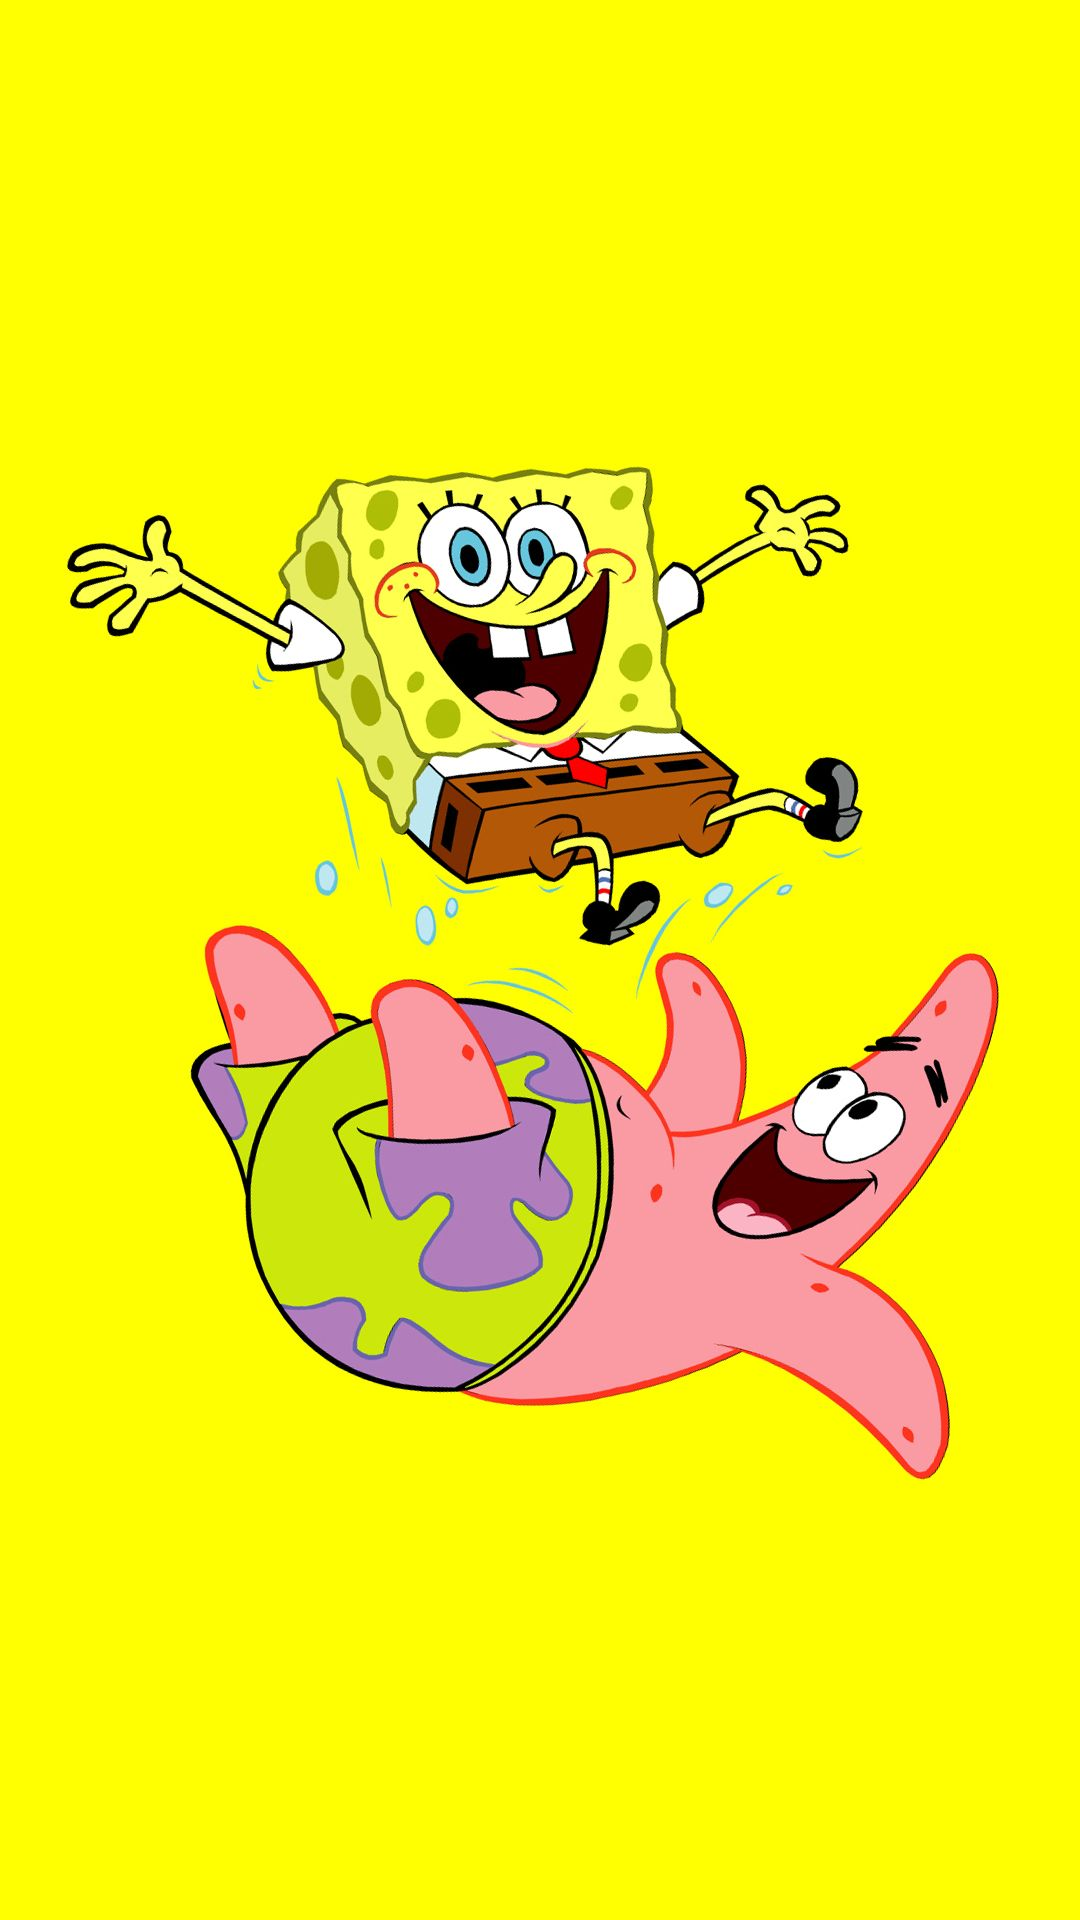 Funny Spongebob And Patrick Spongebob In 2019 Pinterest